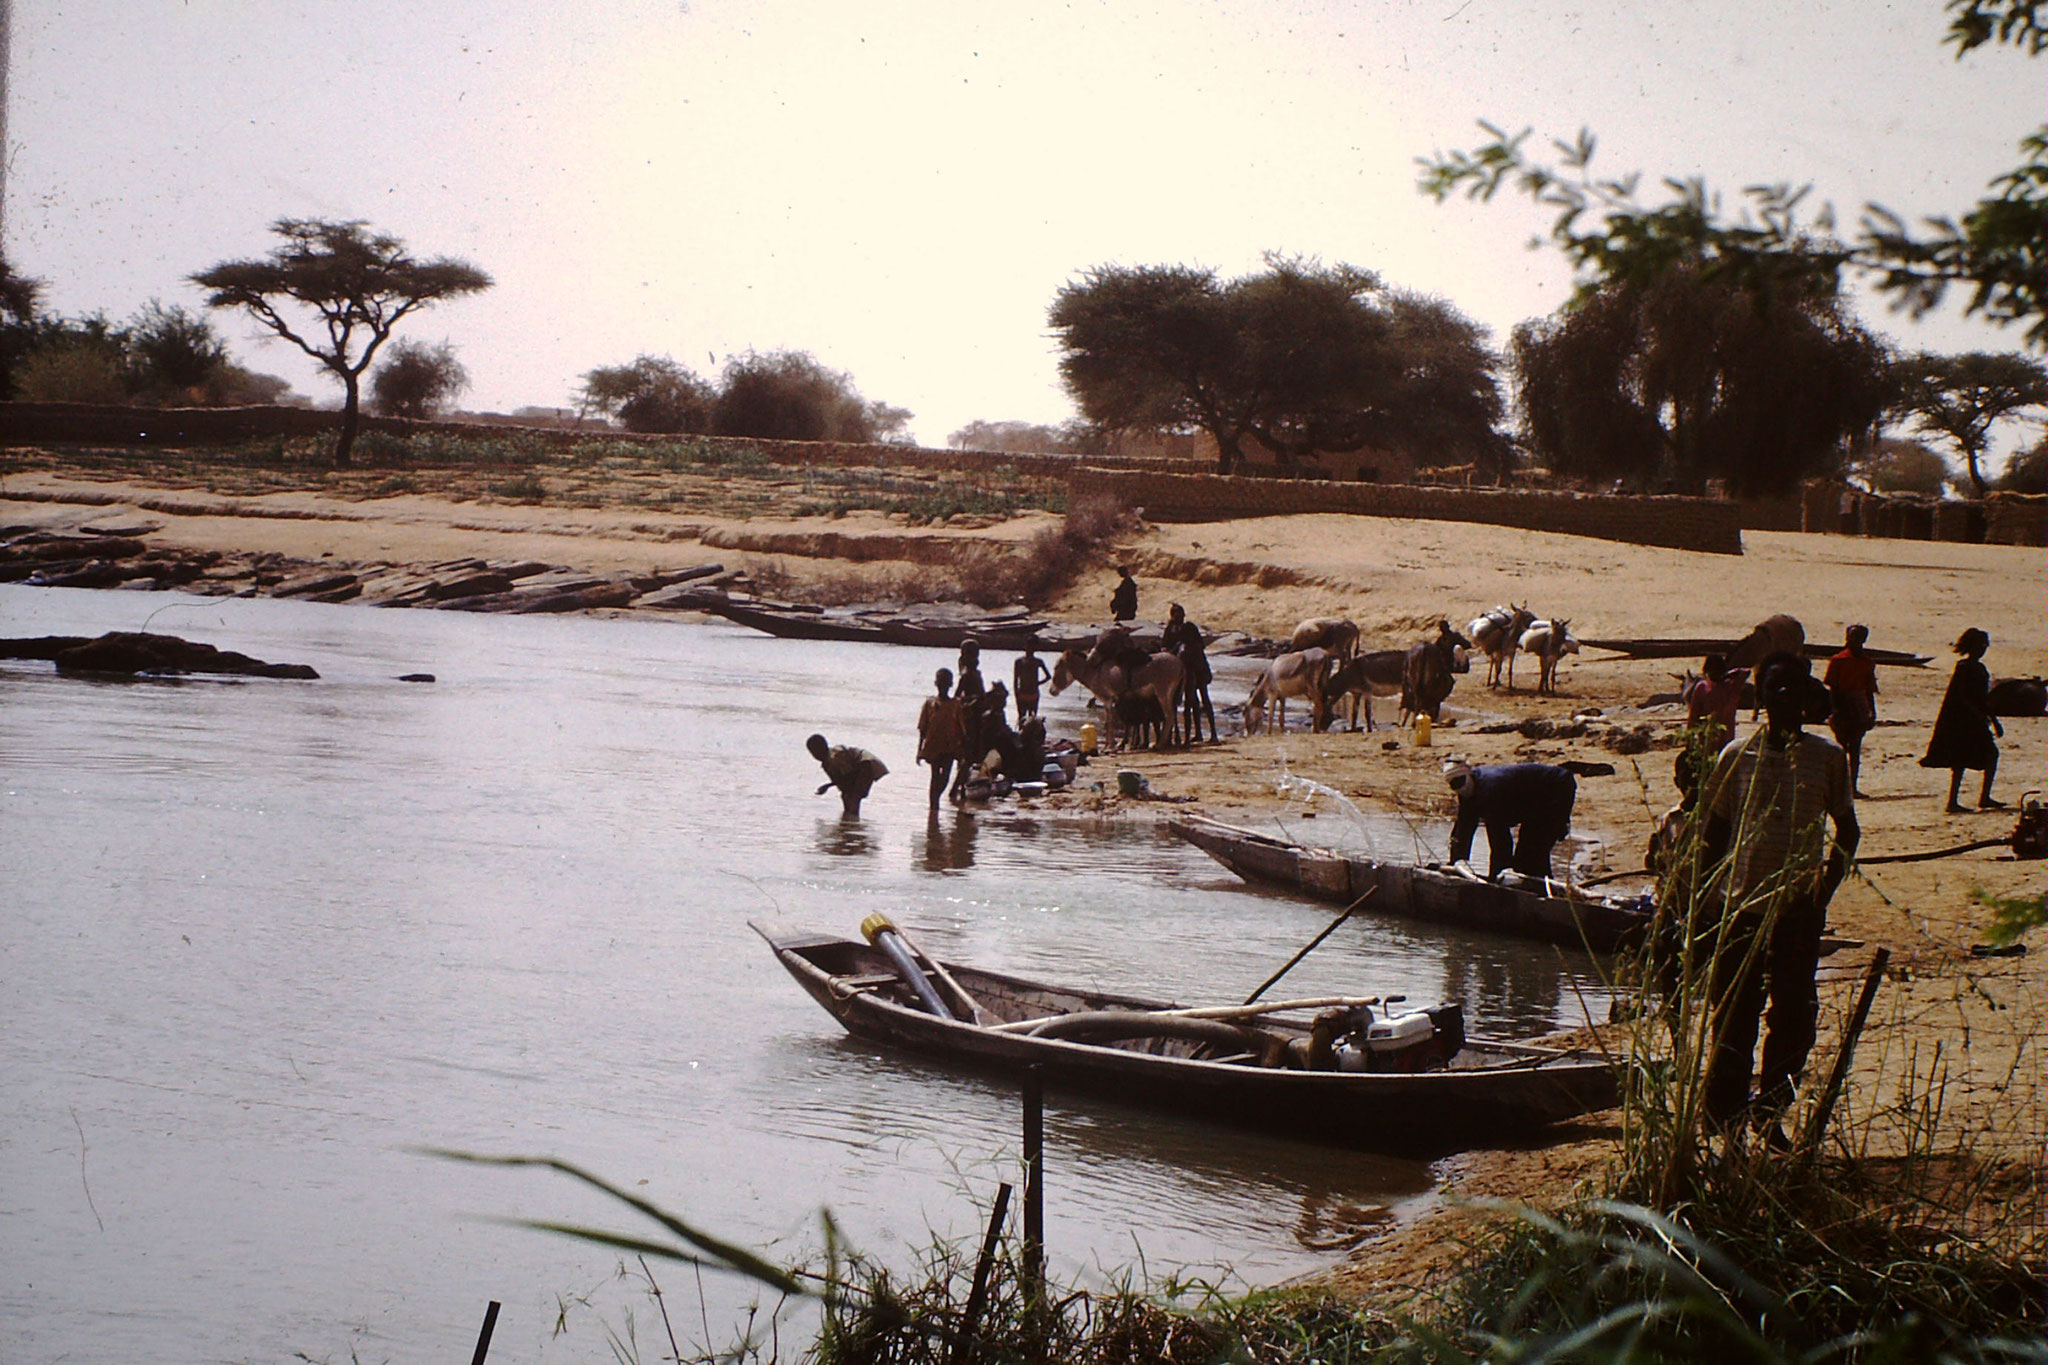 30. Fischer am Fluss Senegal. (2001)